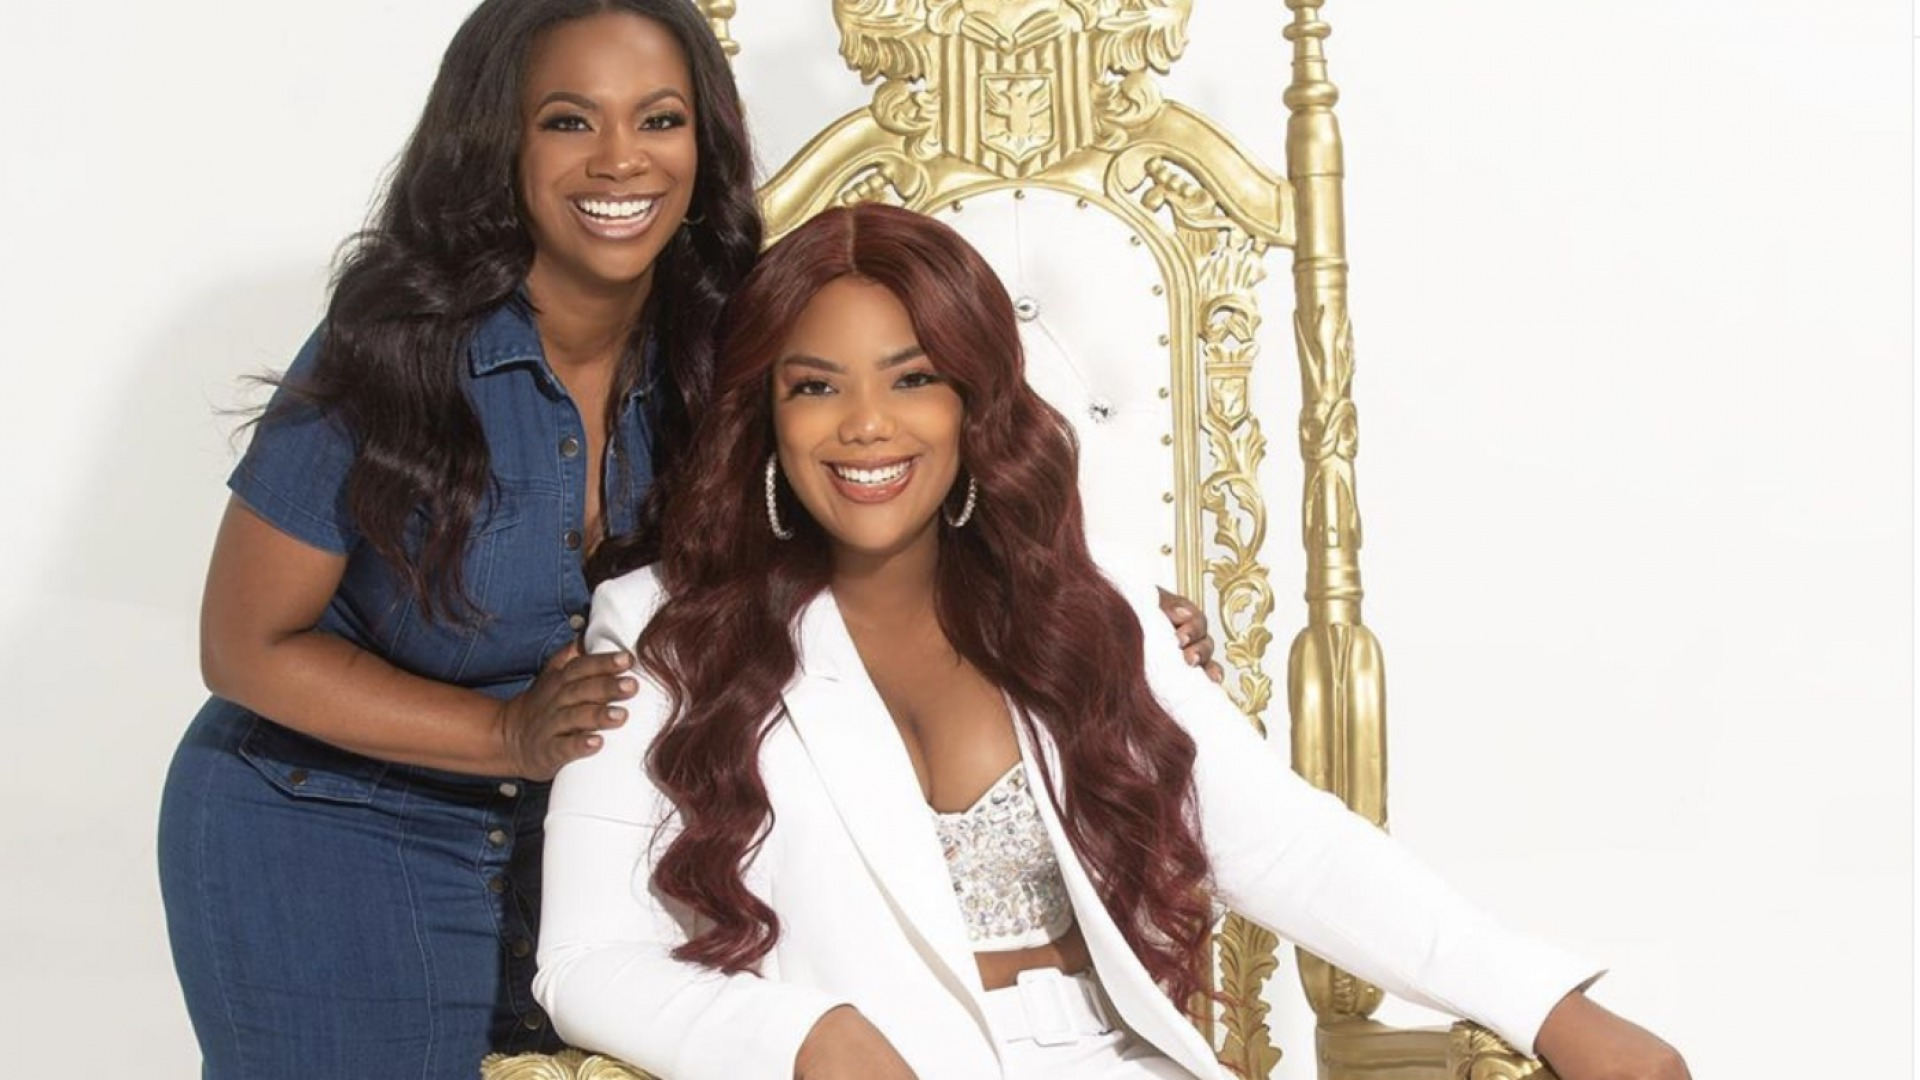 Kandi Burruss Shares A Gorgeous Glam Photo Of Riley Burruss - See It Here